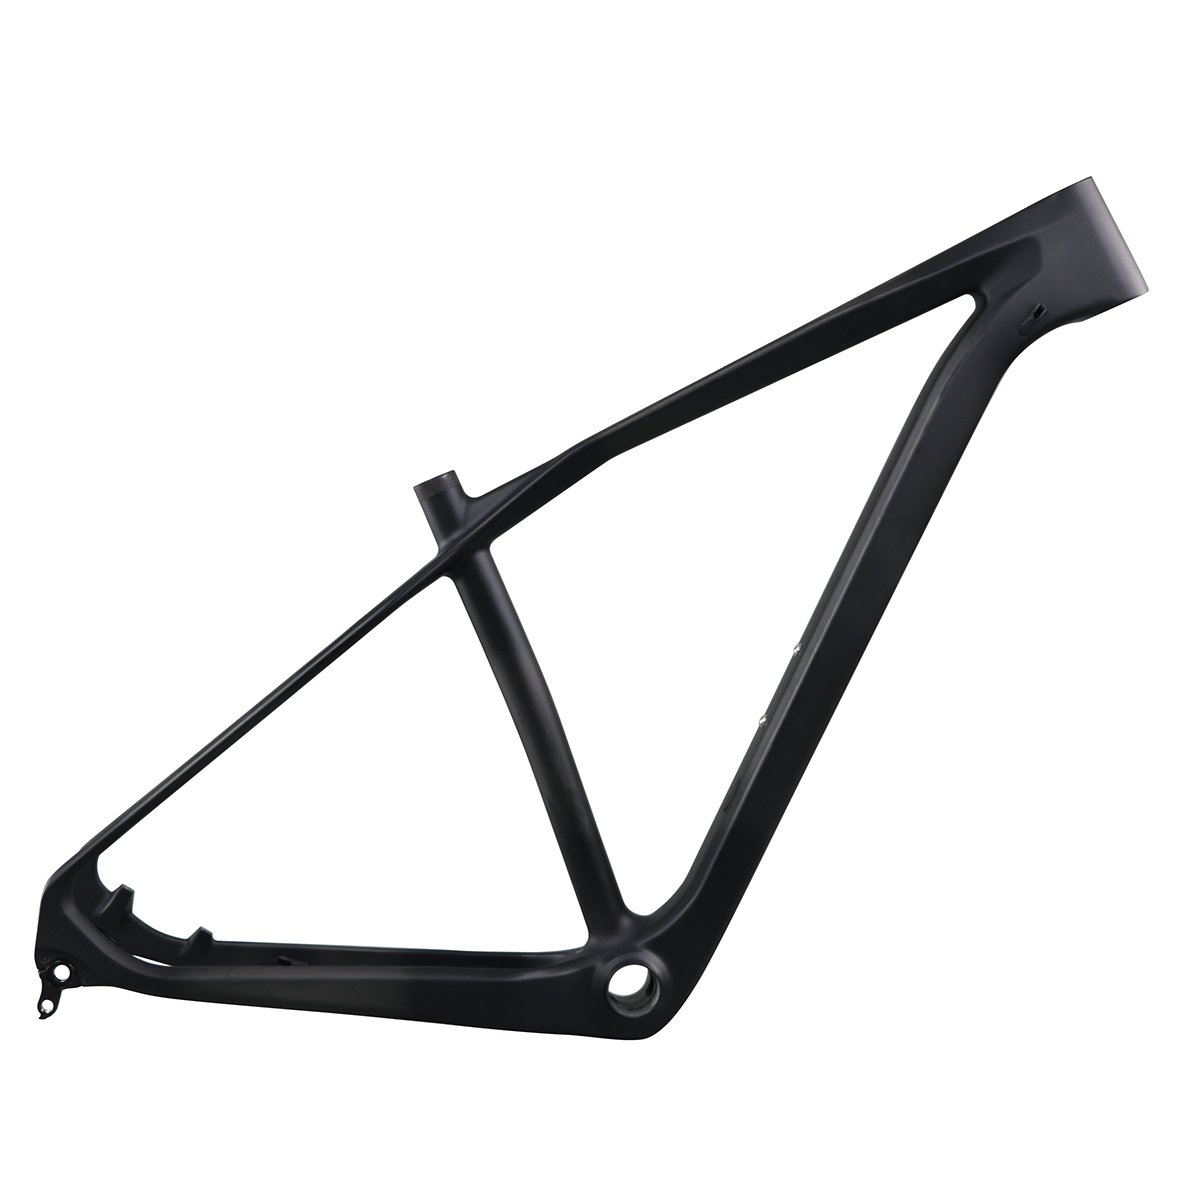 Amazon.com : UD Carbon 29ER MTB Mountain Bike Frame ( For BSA ) 19 ...